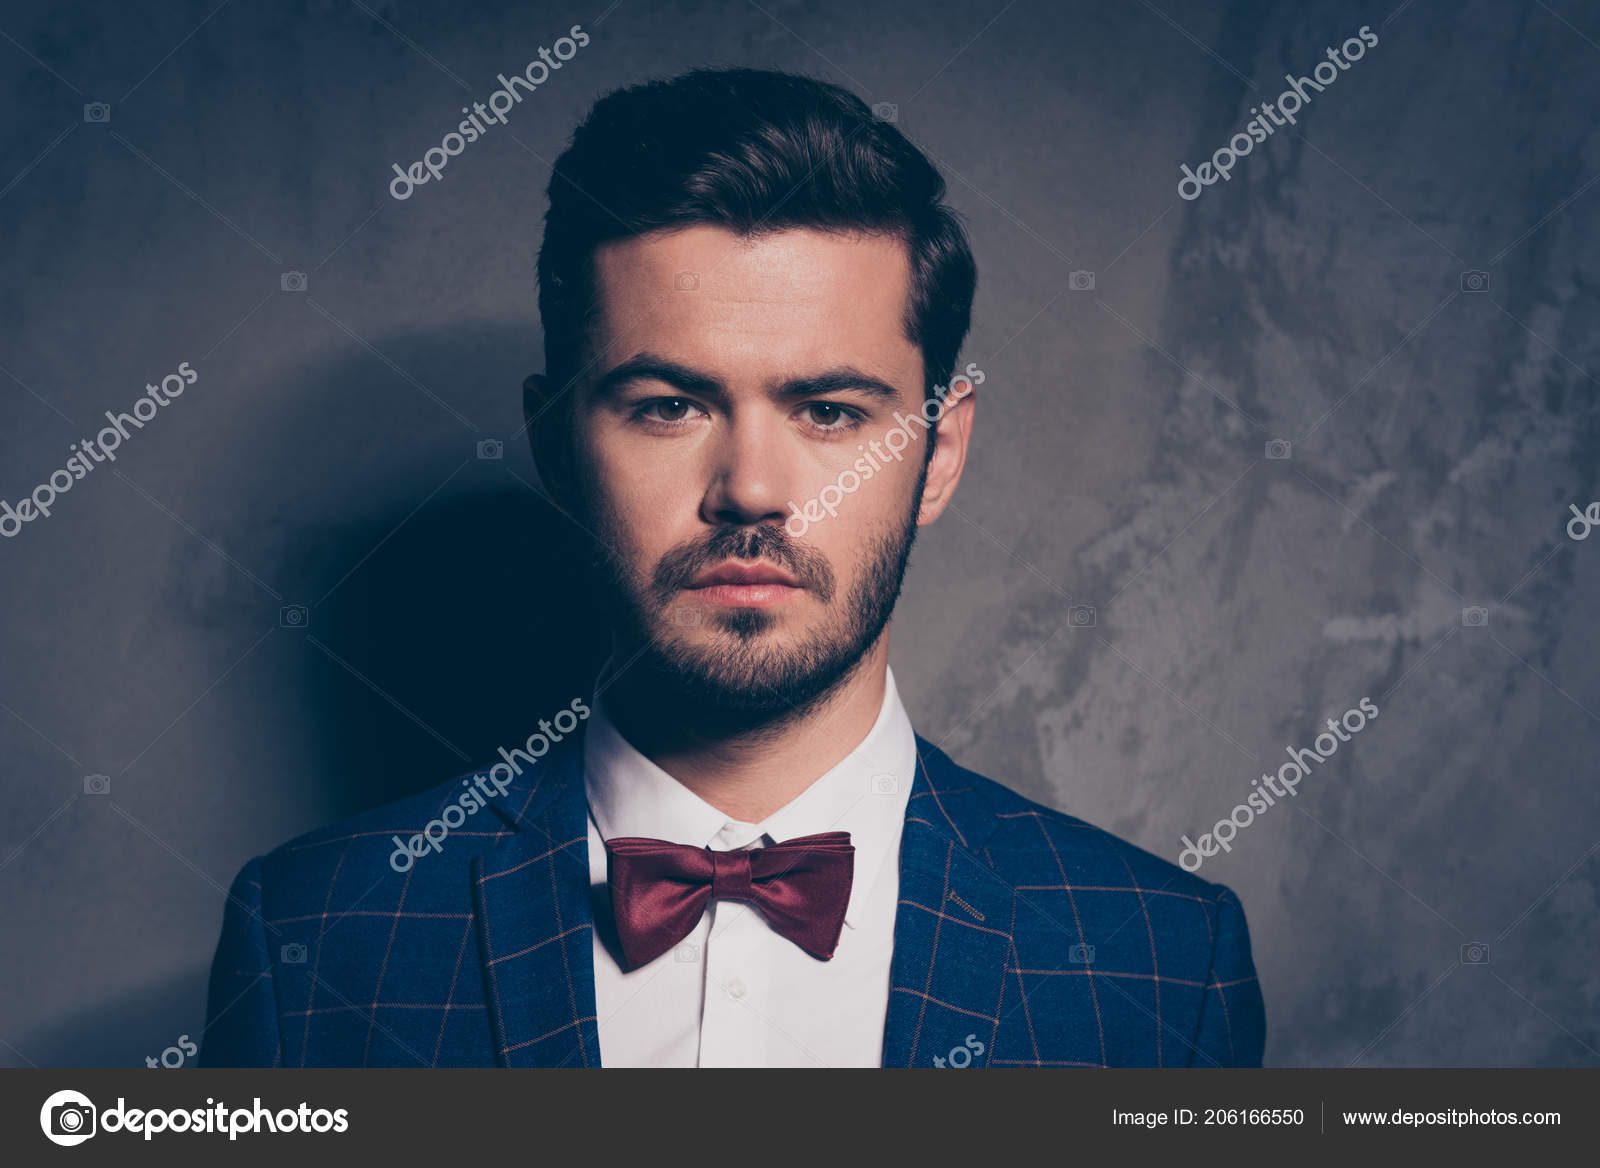 38060f46c08c Close up studio photo portrait of attractive elegant classic classy with  serious facial expression burgundy bow-tie checkered dark jacket white  shirt ...